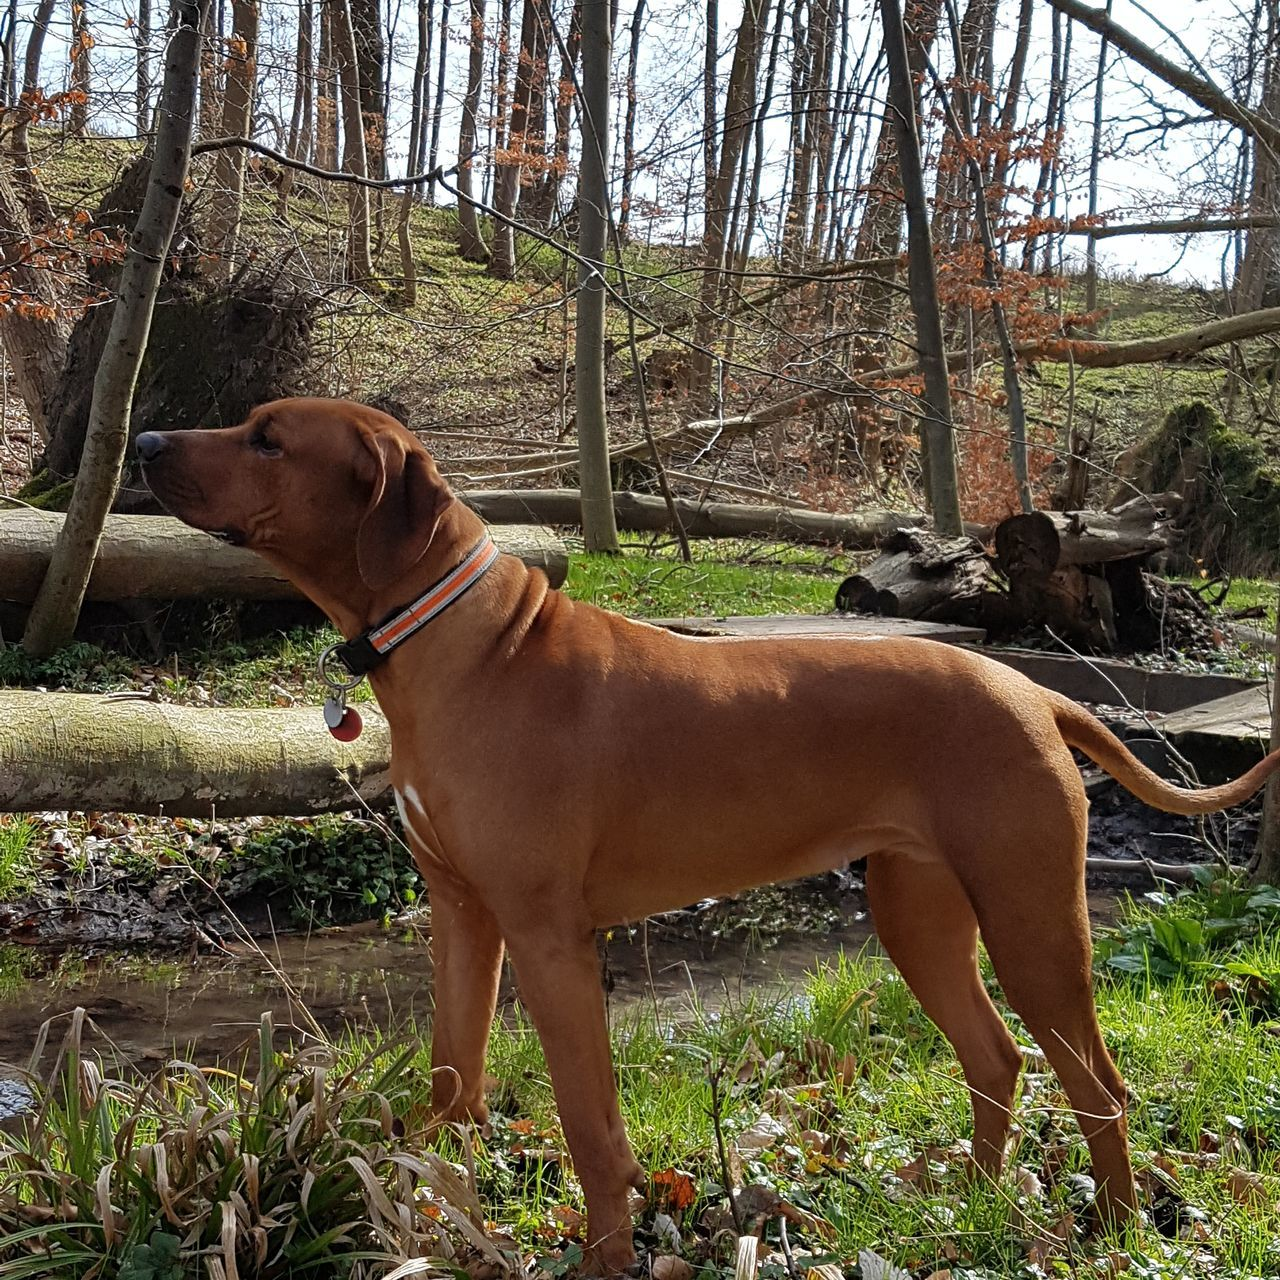 mammal, animal themes, domestic animals, vertebrate, domestic, animal, pets, one animal, plant, land, canine, tree, dog, standing, nature, day, field, no people, collar, side view, outdoors, herbivorous